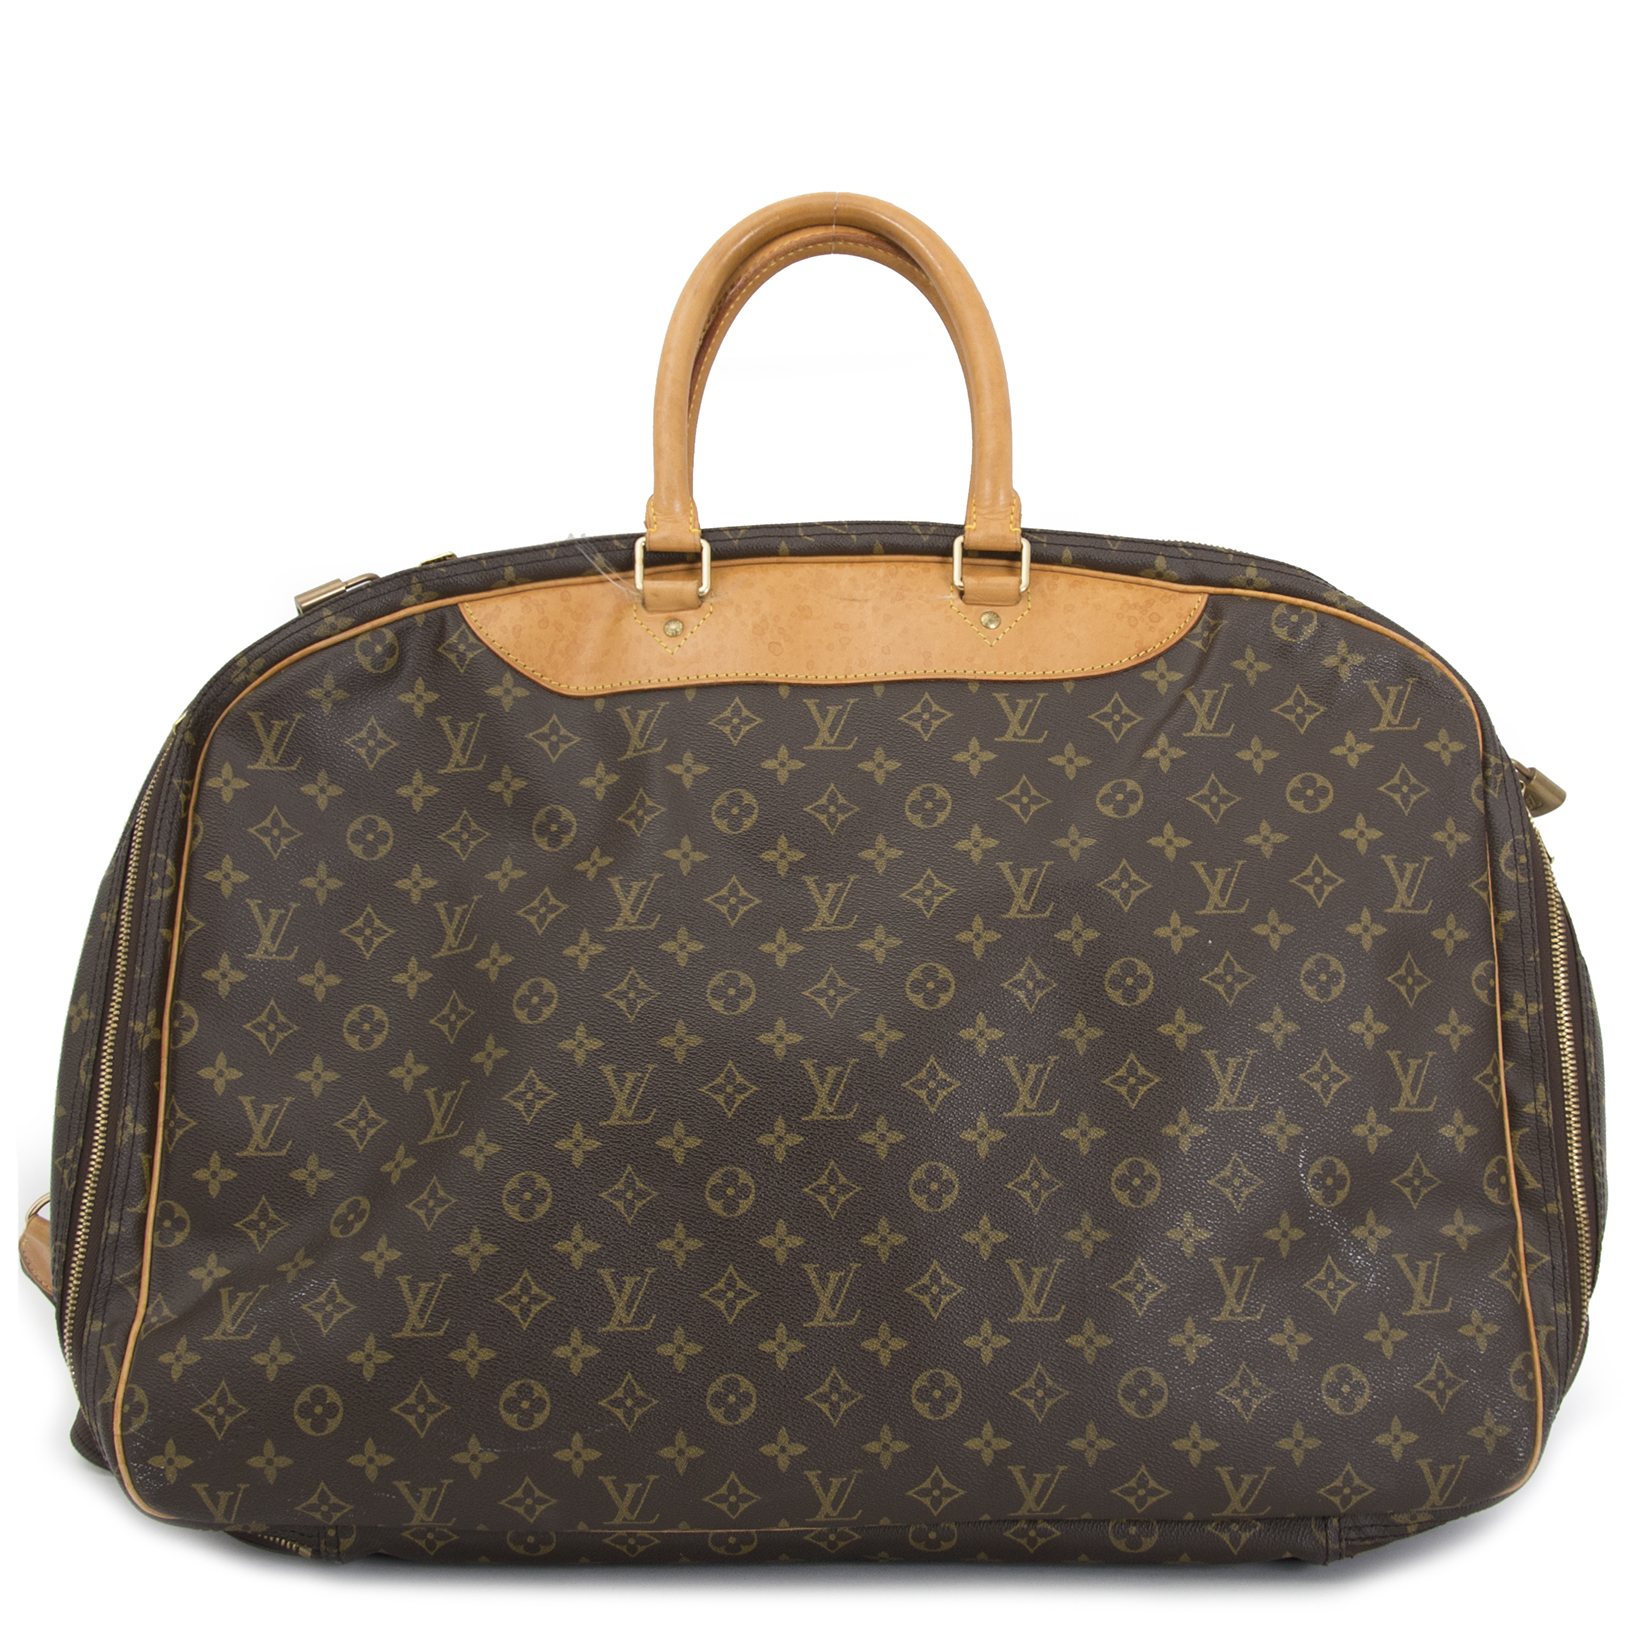 buy your preloved Louis Vuitton Monogram Alize 3 Compartment Luggage Travel Bag